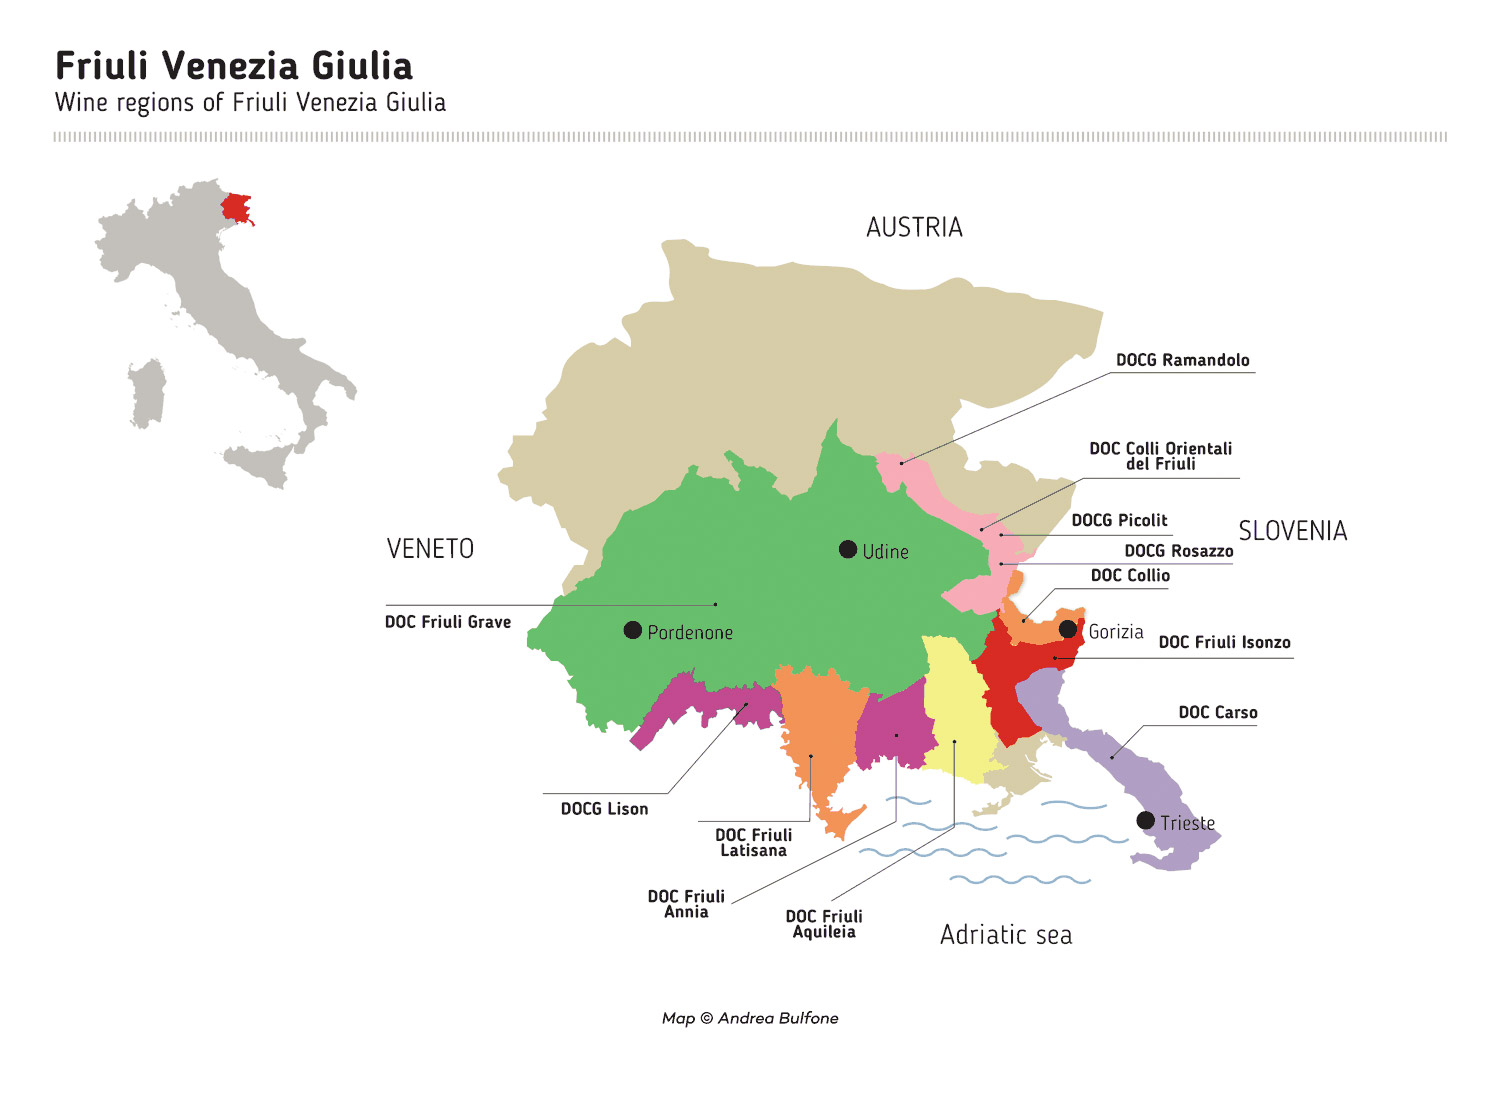 Friuli Venezia Giulia Wine Region Map by Andrea Bulfone